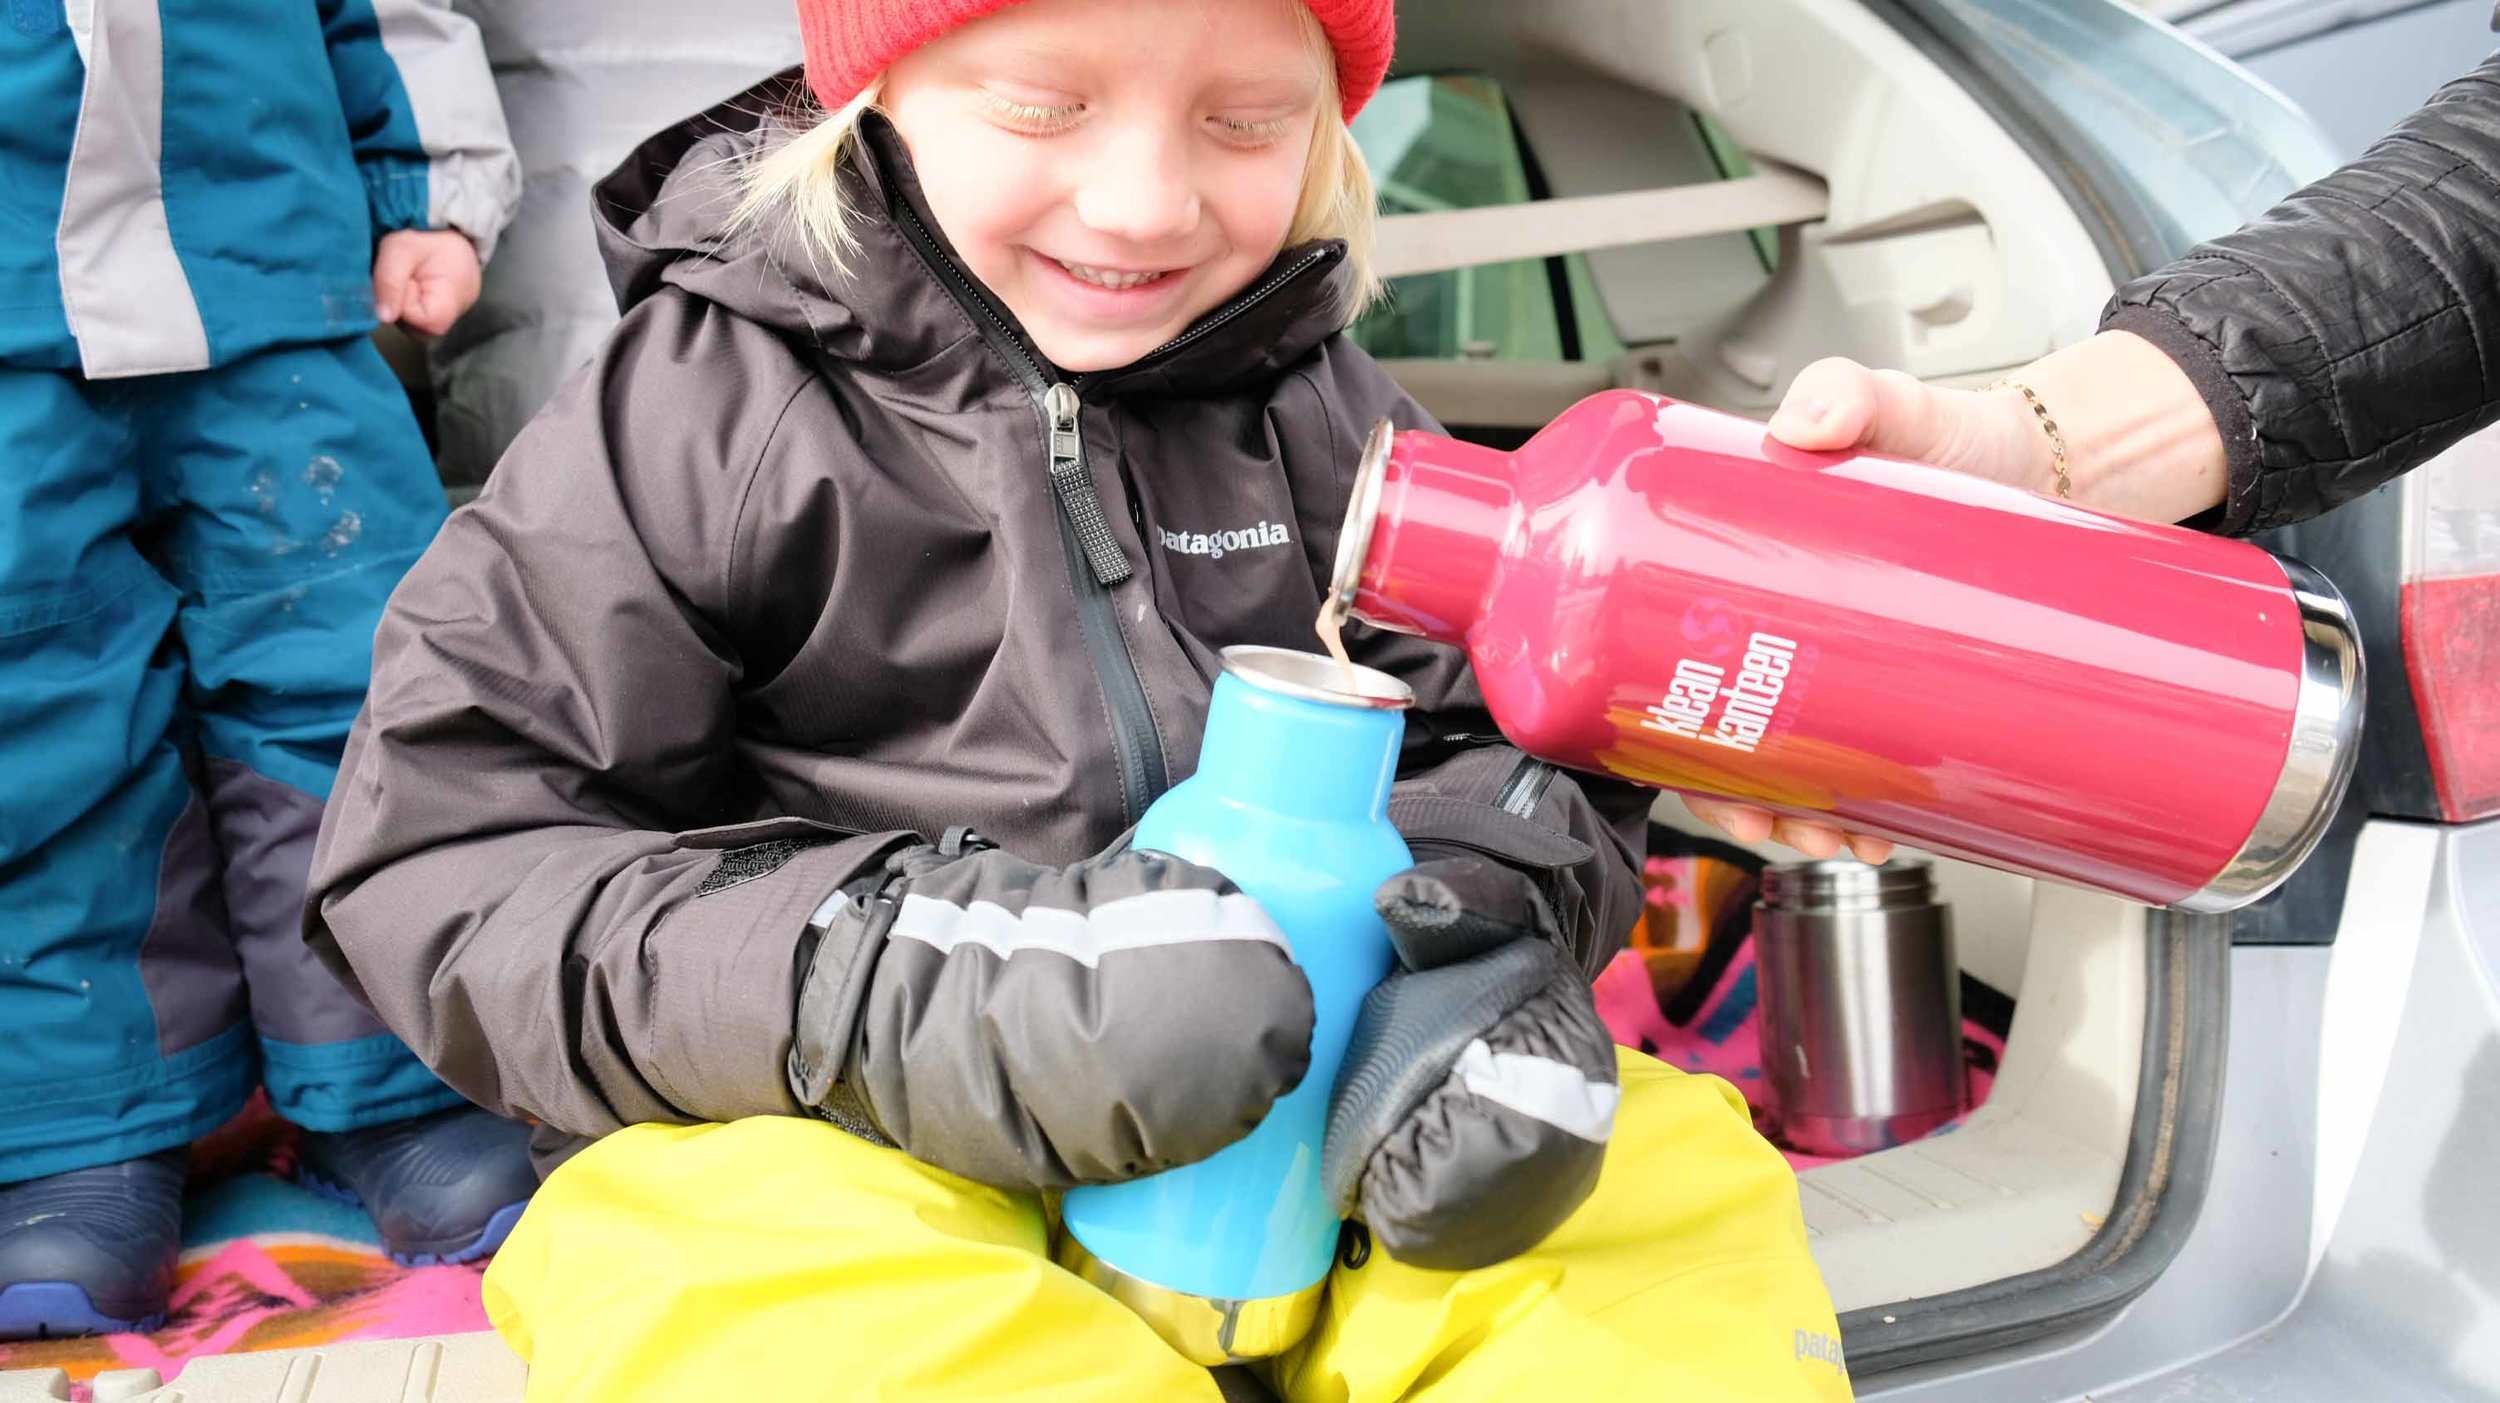 Our friend, Hyde, refilling his cocoa on our hike at Silver Lake.